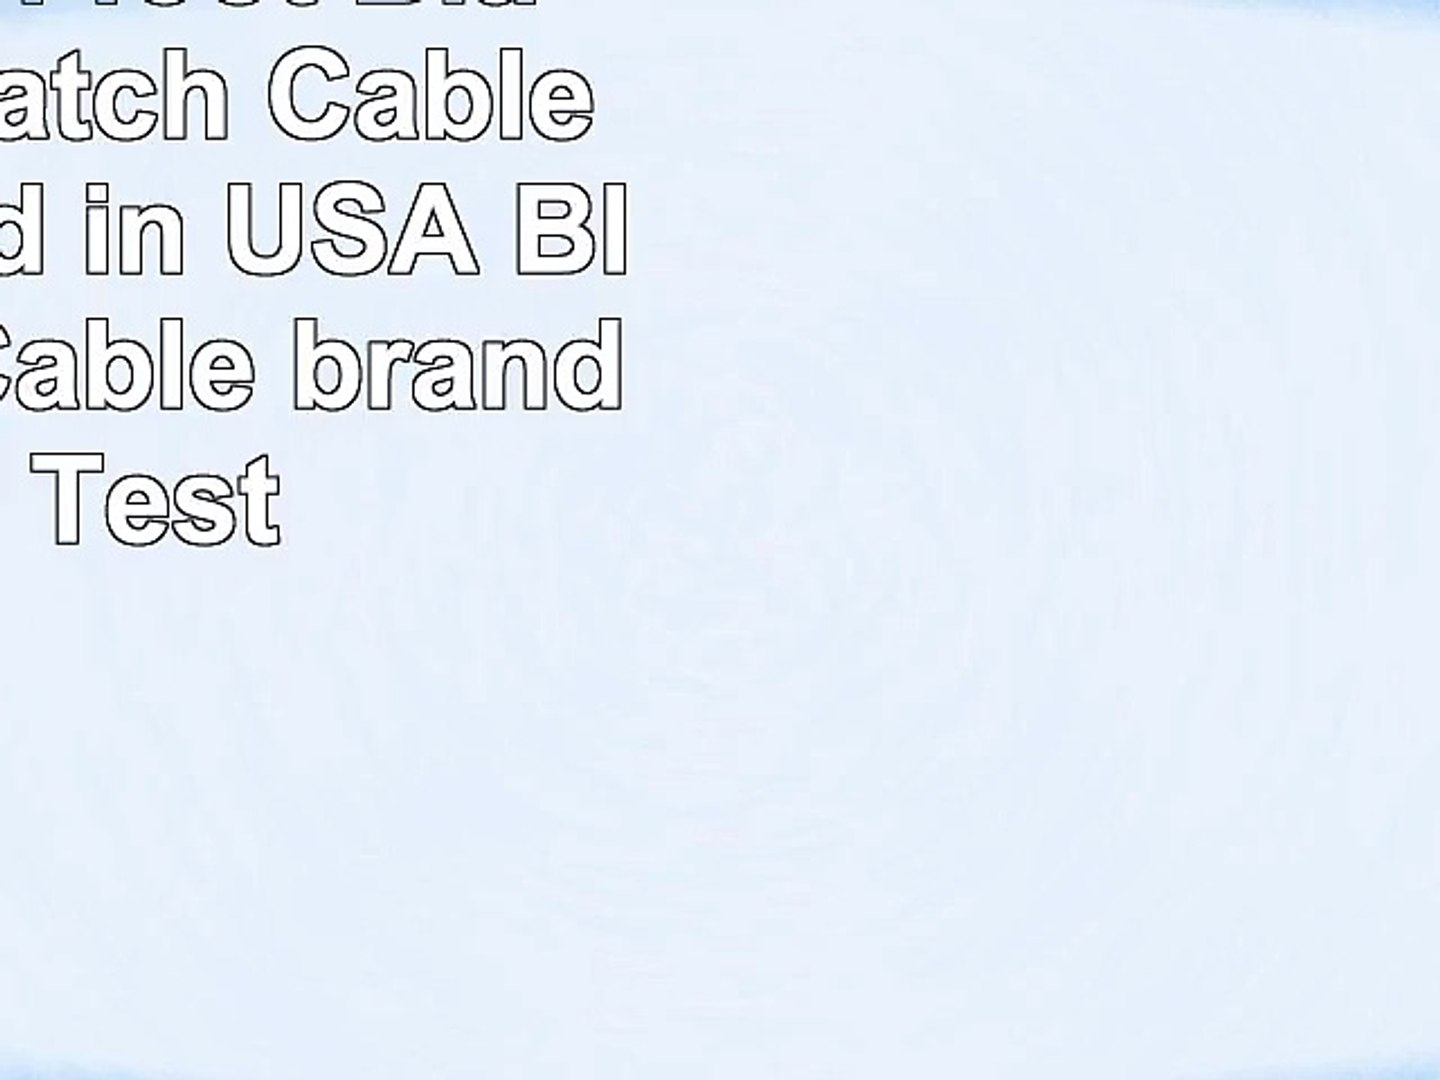 Certified 4 foot Black Cat 6 Patch Cable Assembled in USA Blue Jeans Cable brand with Test